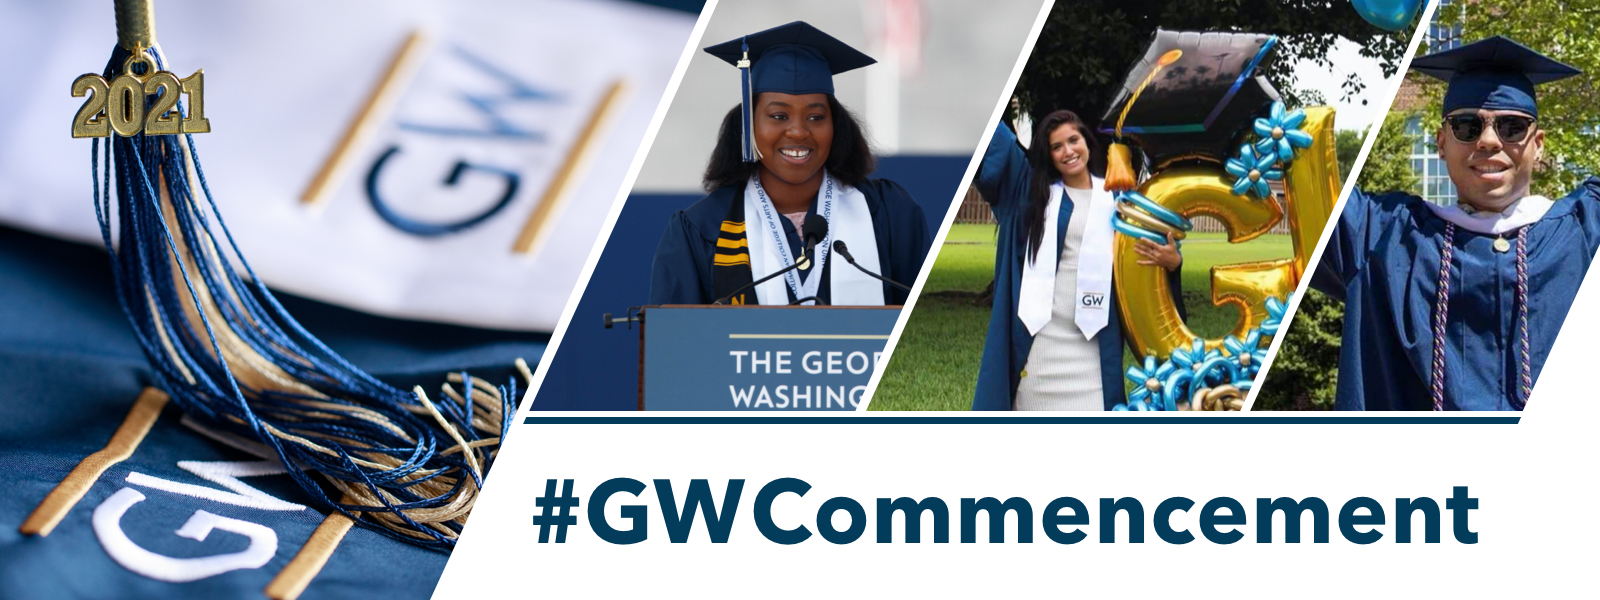 #GWCommencement; happy groups of graduates in regalia